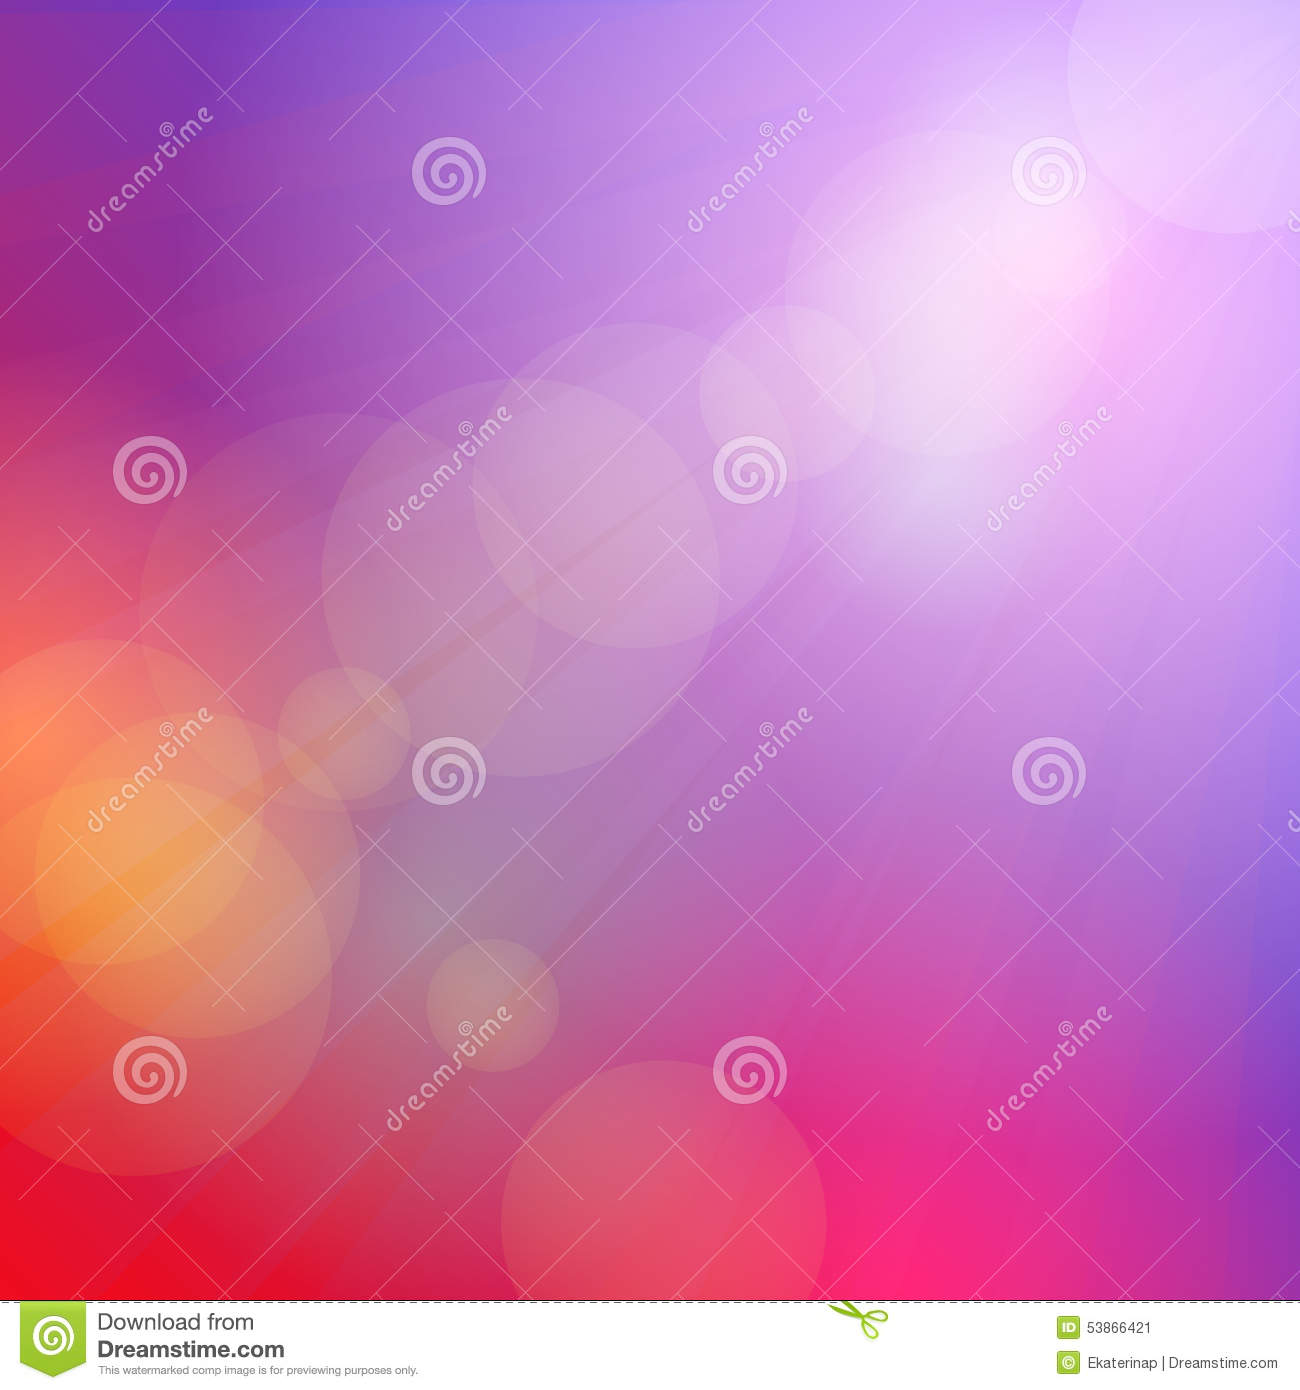 Abstract sky pink background, sunset, dawn, soft colored. Vector